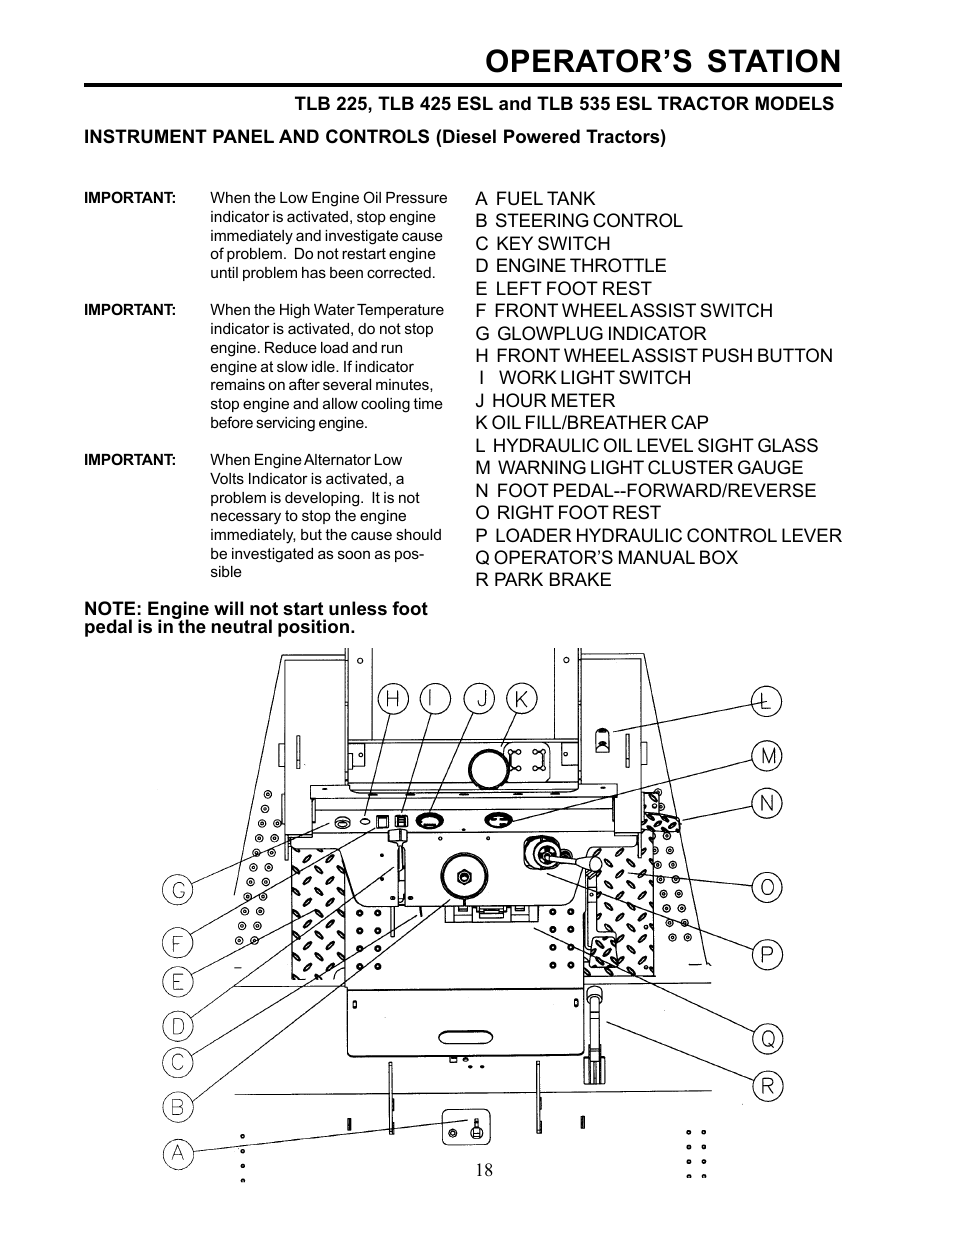 Operator\'s station | Allmand Brothers TLB 535 User Manual | Page 18 / 51